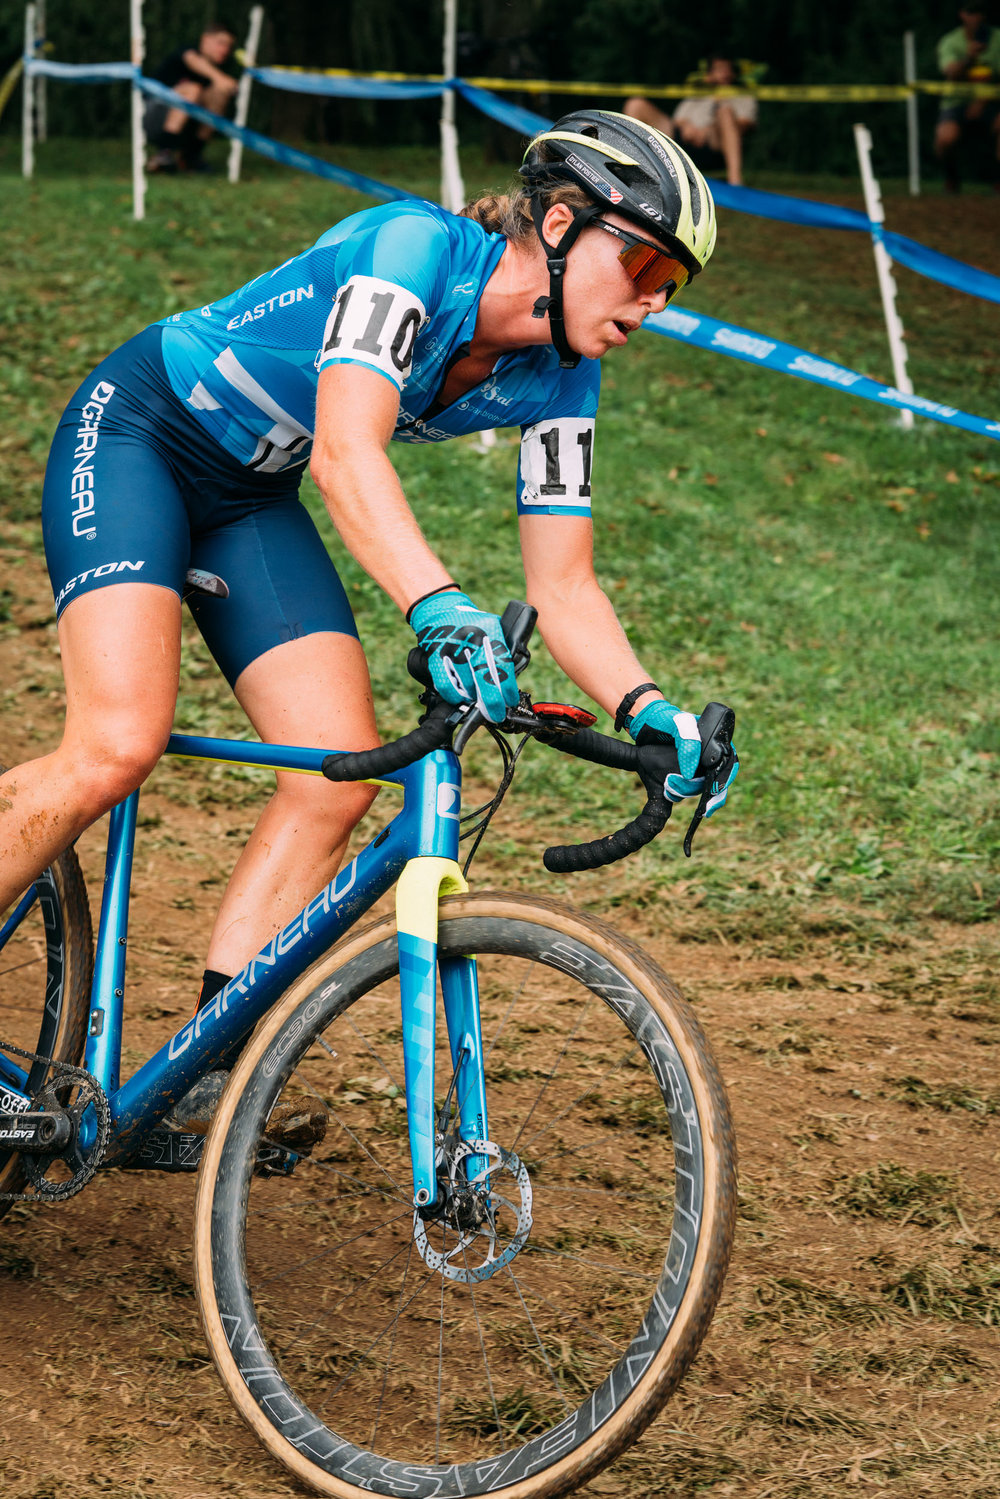 photo-rhetoric-to-be-determined-nittany-cyclocross-1113.jpg